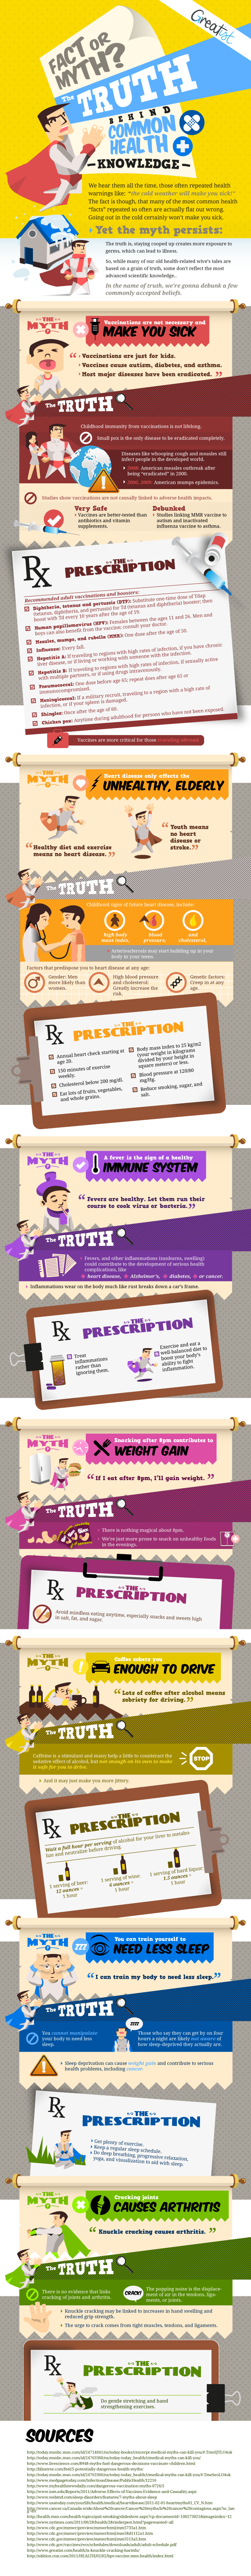 Busting Common Health Myths